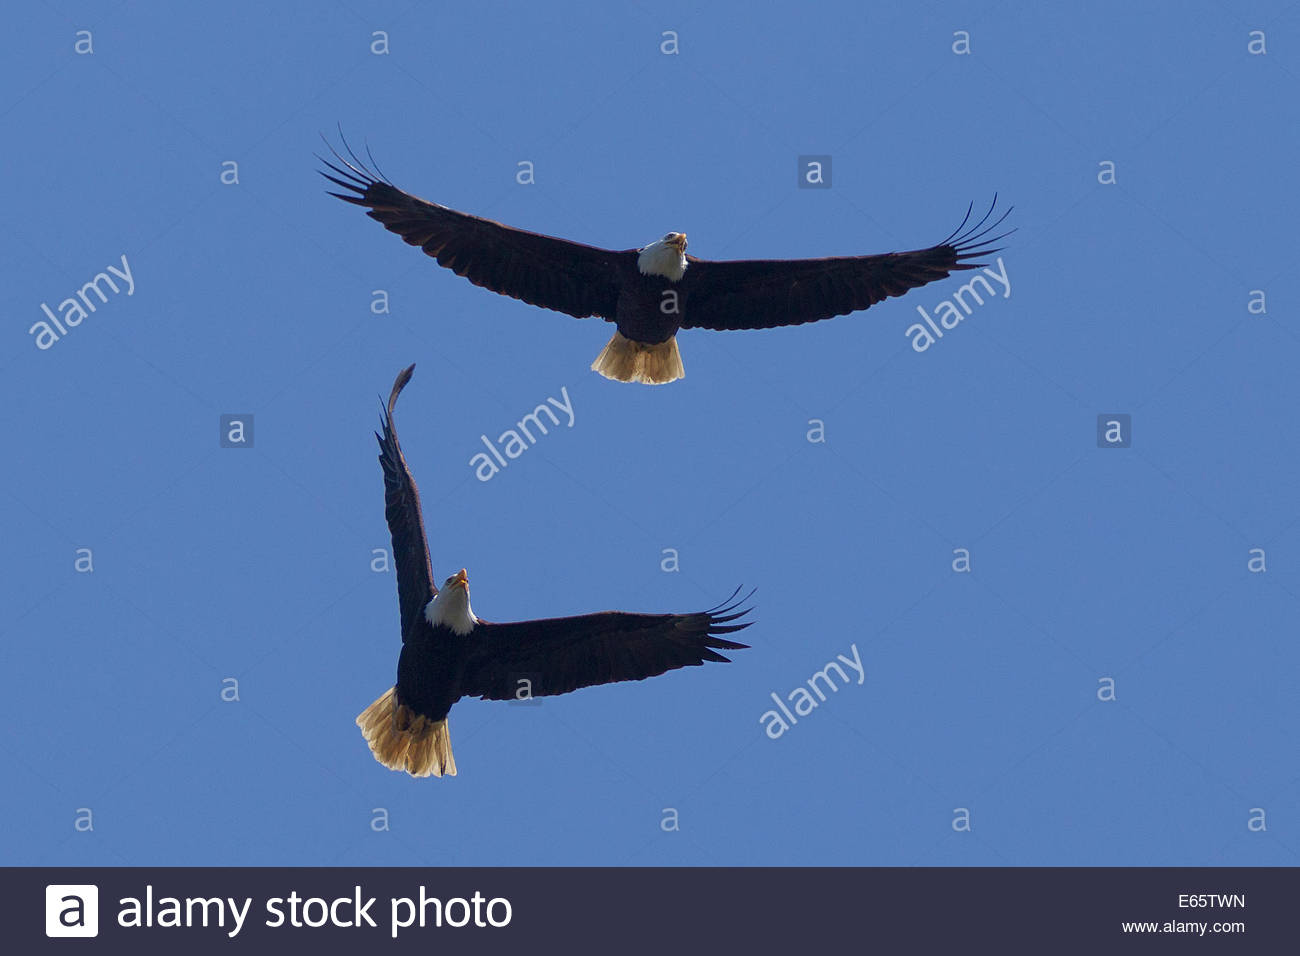 A bald eagle (Haliaeetus leucocephalus) chases another in the sky over Hood Canal near Seabeck, Washington. - Stock Image